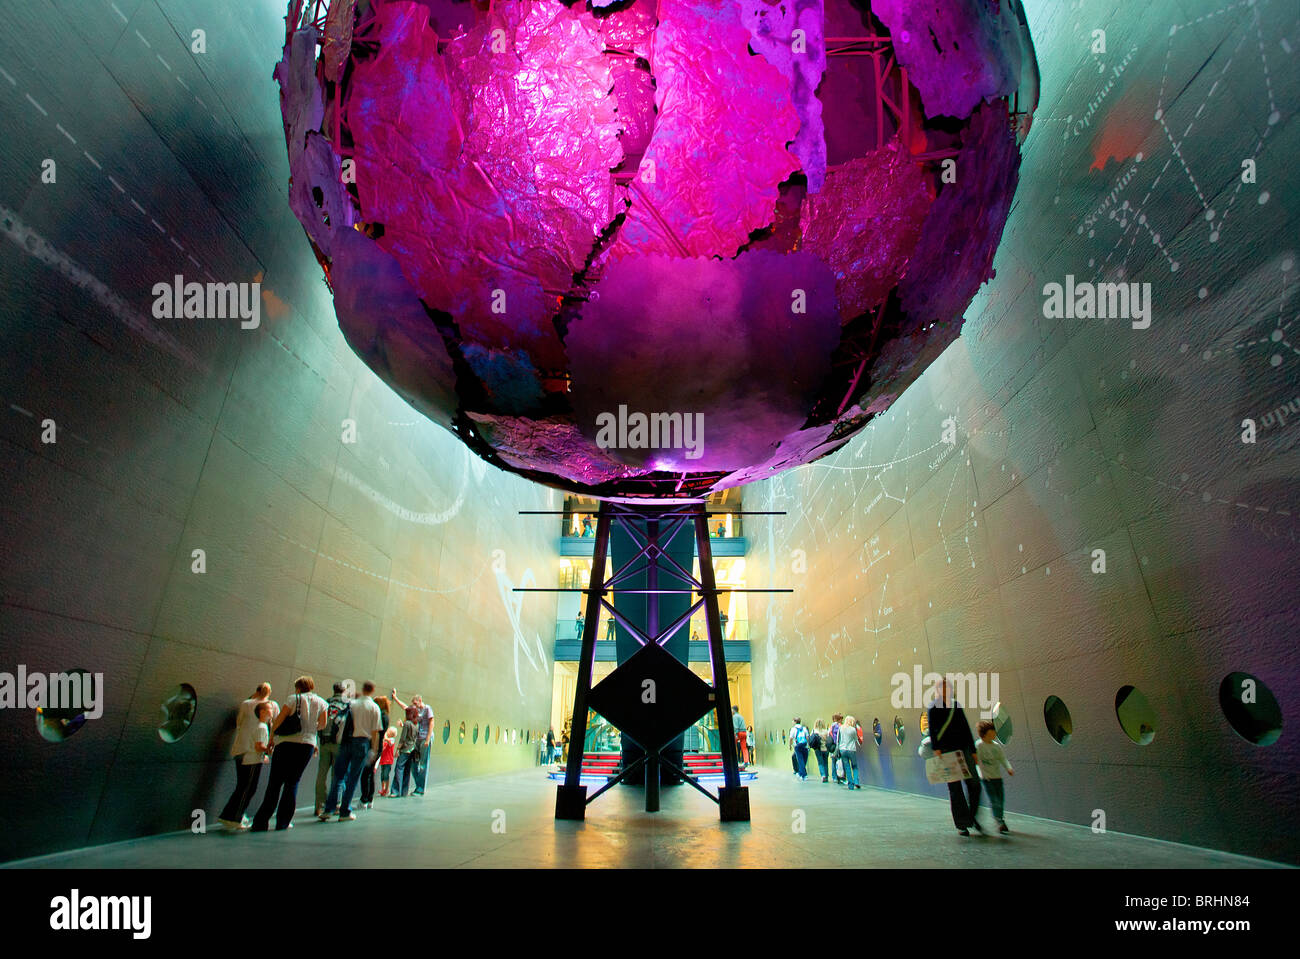 Europe, United Kingdom, England, The Earth Galleries at London's Natural History Museum - Stock Image